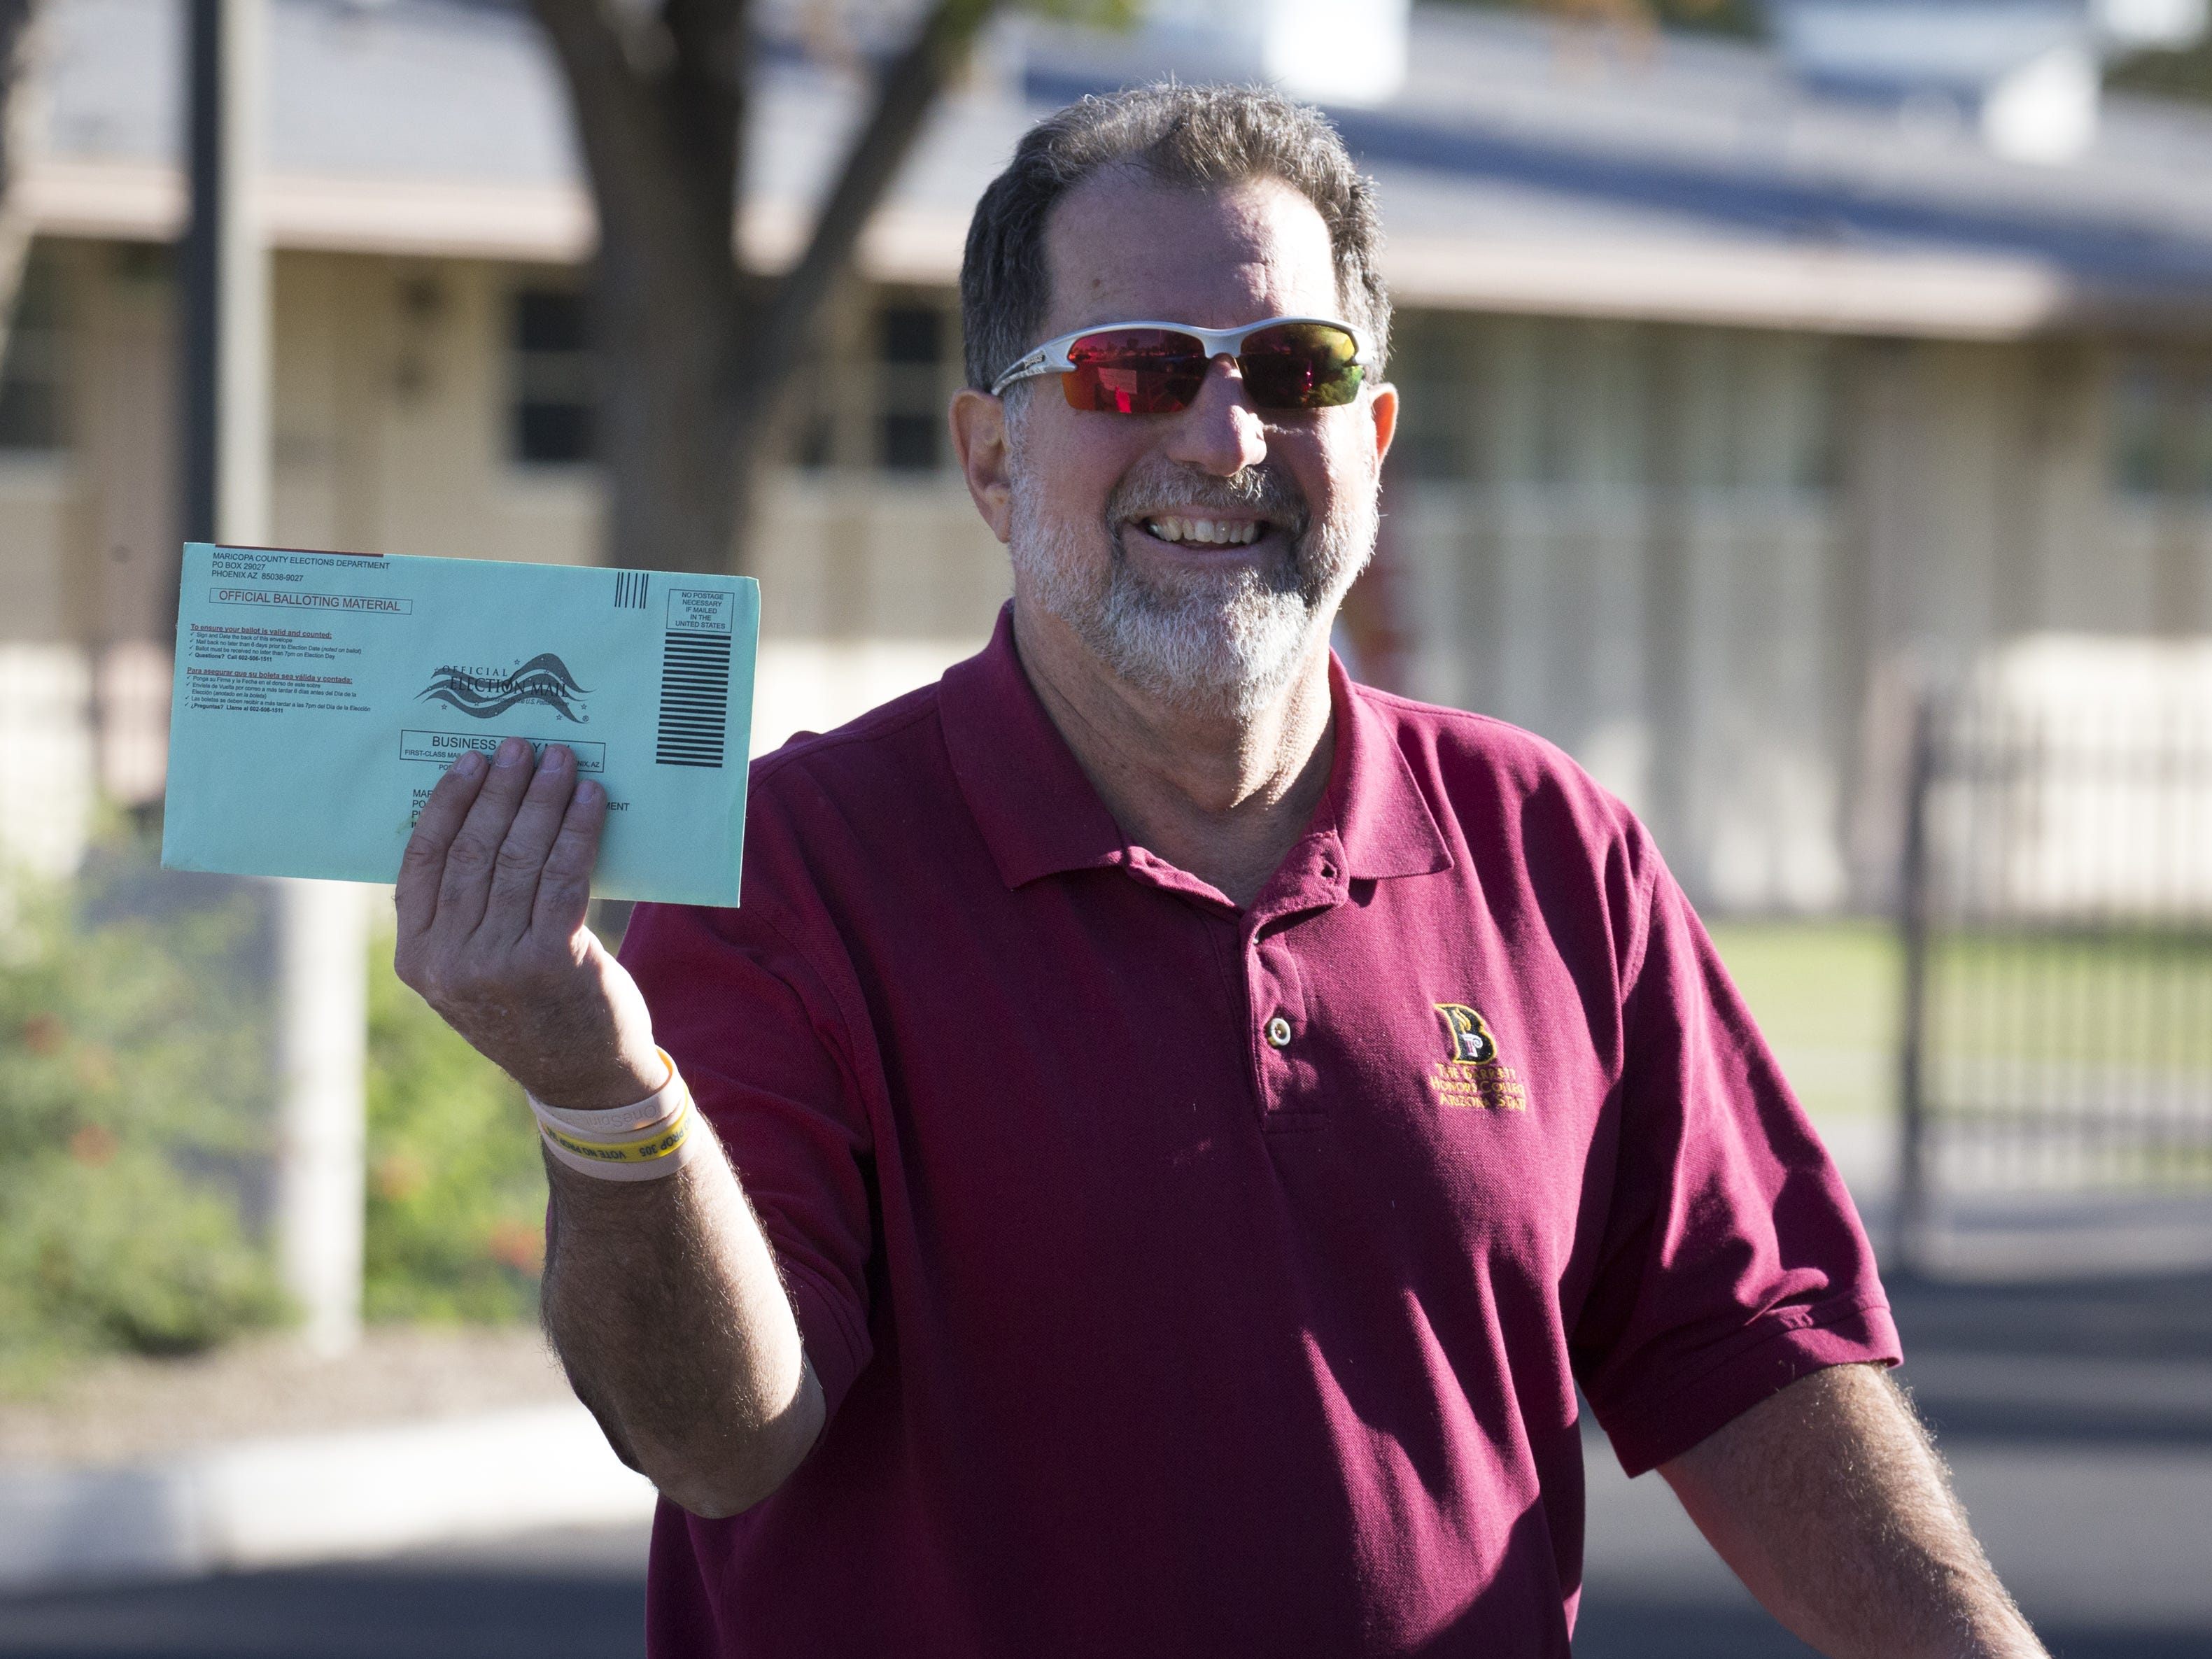 Kurt Goeing arrives to drop off his ballot, Nov. 6, 2018, at Glendale Elementary School District, 7301 N. 58th Ave. in Glendale.